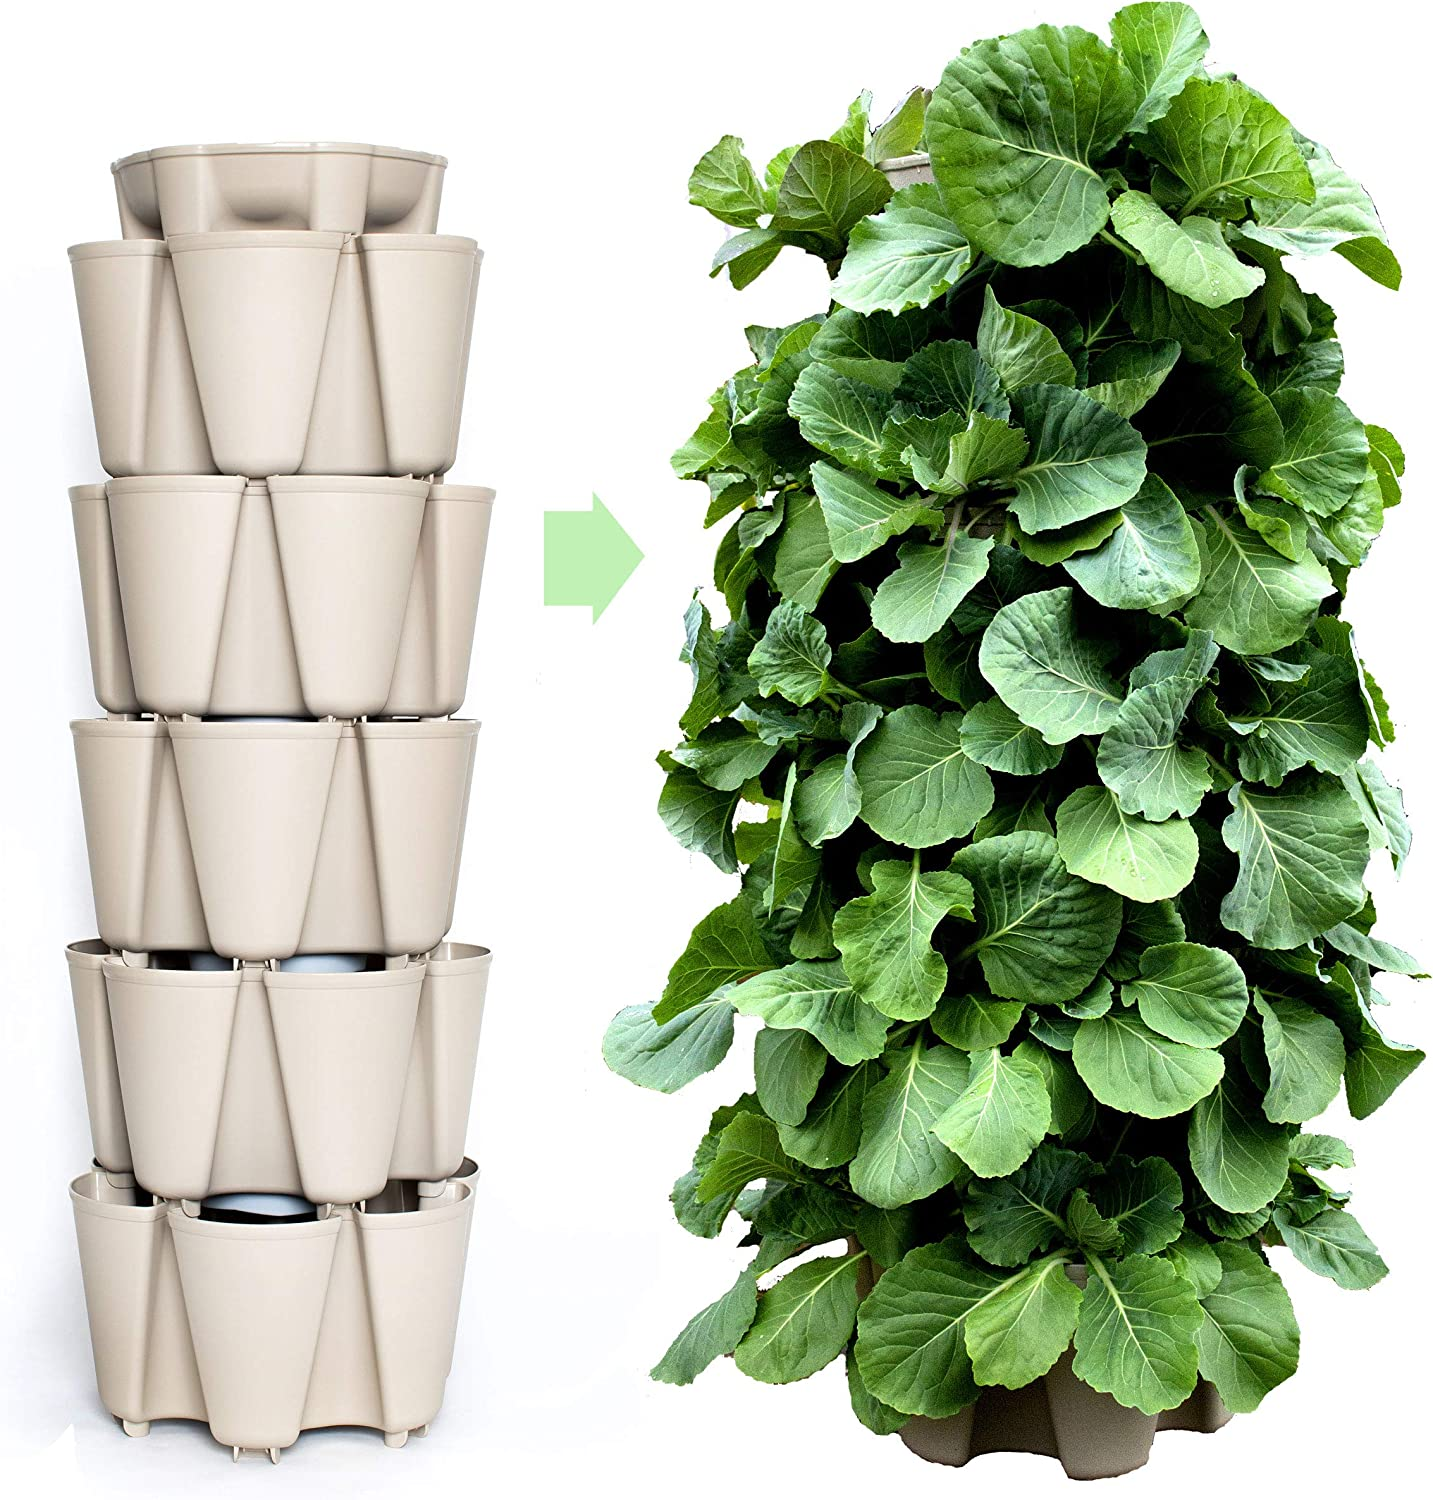 GreenStalk Patented Large 5 Tier Planter Pa Super-cheap Vertical Garden with Cheap sale